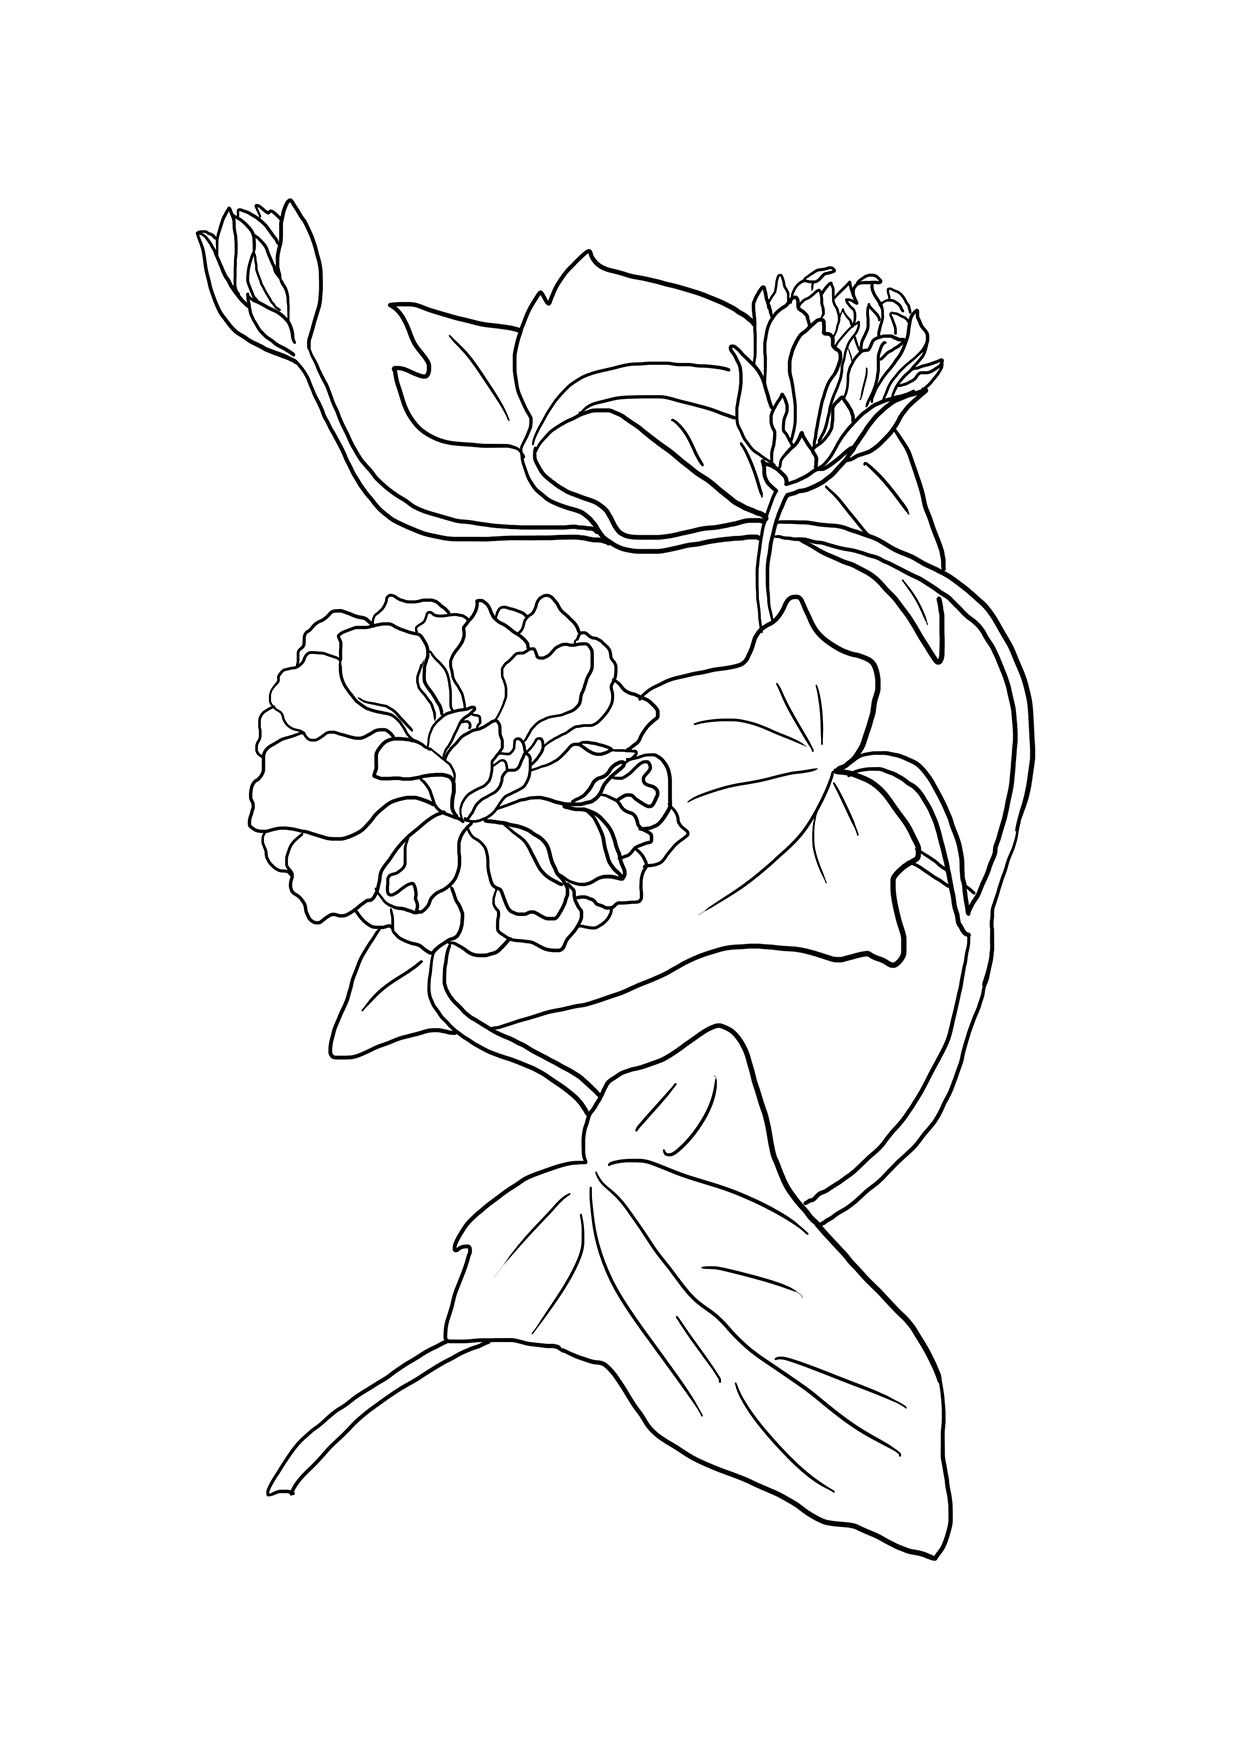 printable flower drawing to color